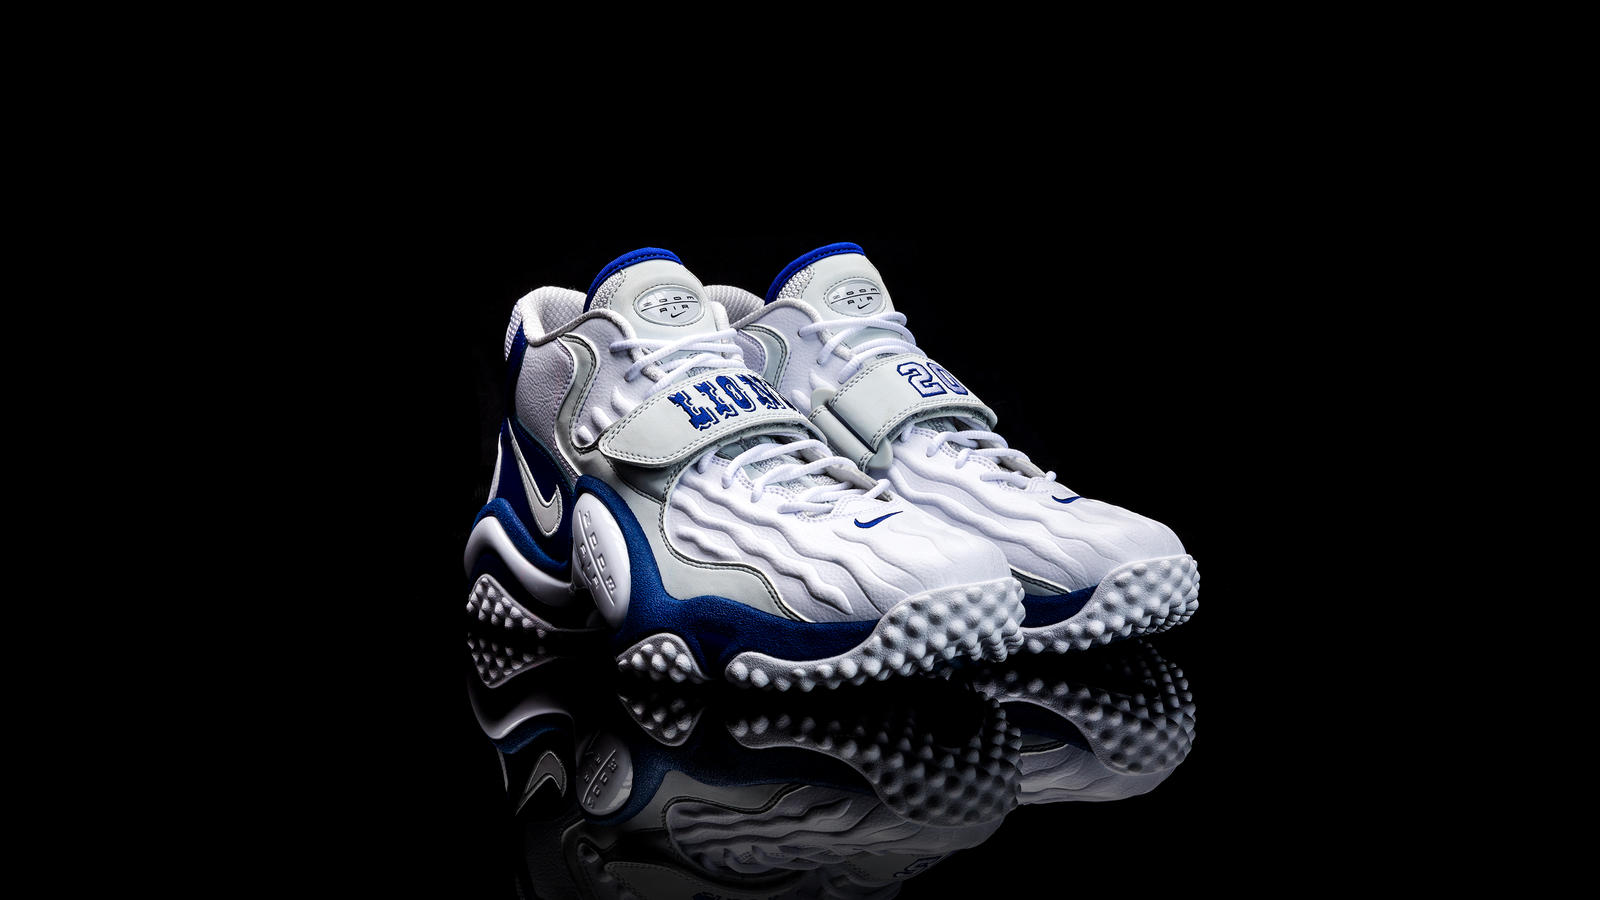 Barry Sanders Nike Air Zoom Turf Jet 97 3